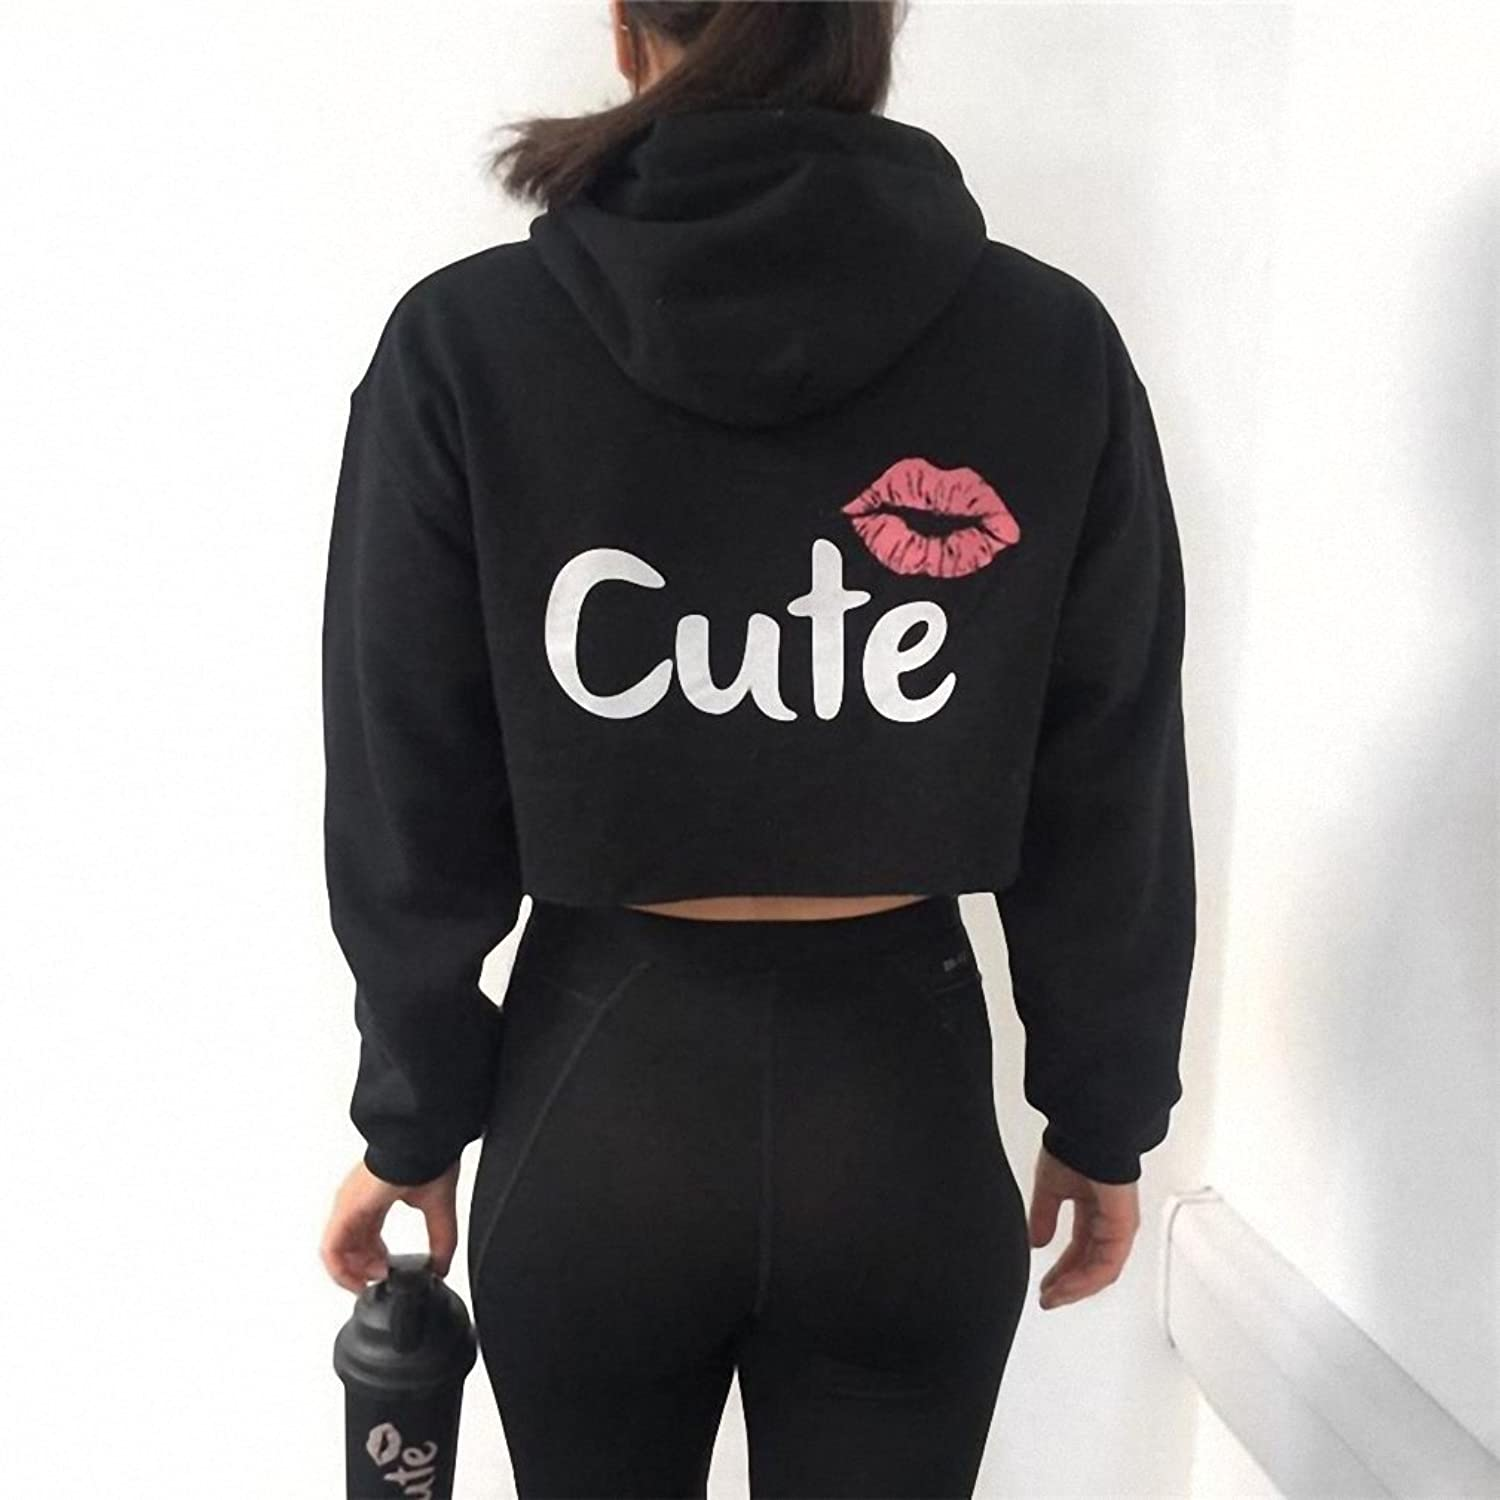 Autumn Casual Pullover Women Hoodies Long Sleeve Harajuku Print Letters Cute Sweatshirts Women Short Tops WS2279E at Amazon Womens Clothing store: